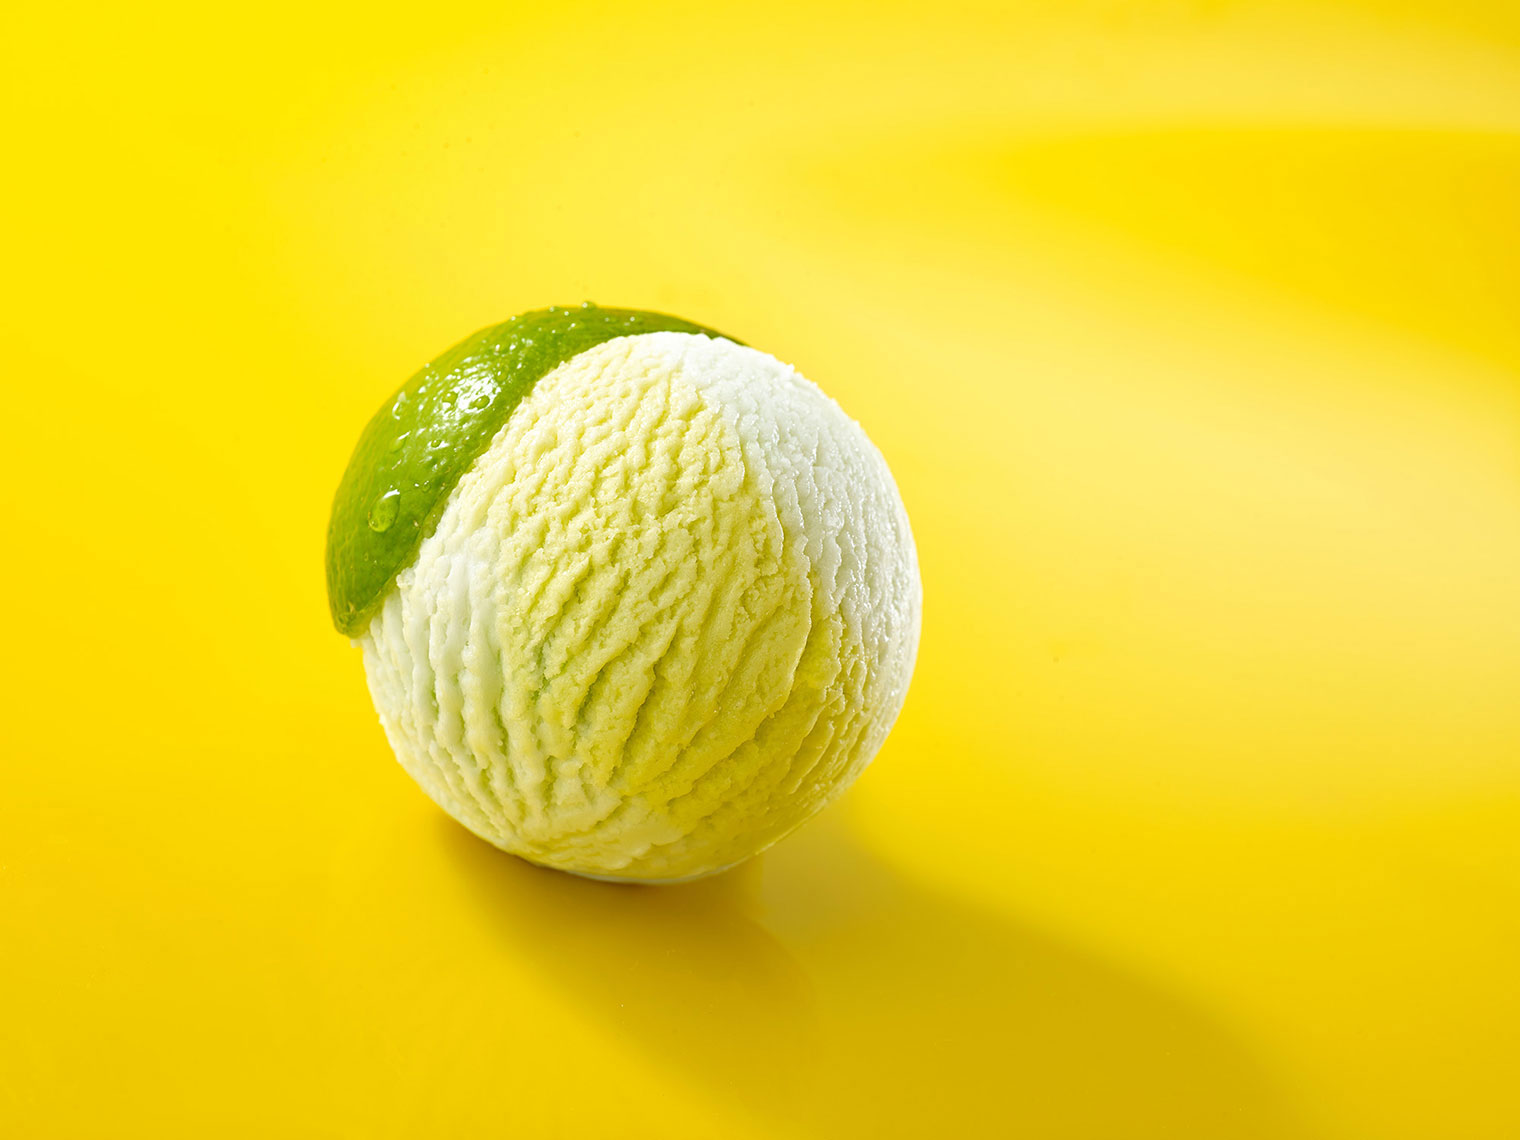 048_F076_food_shot_lime_ice_cream